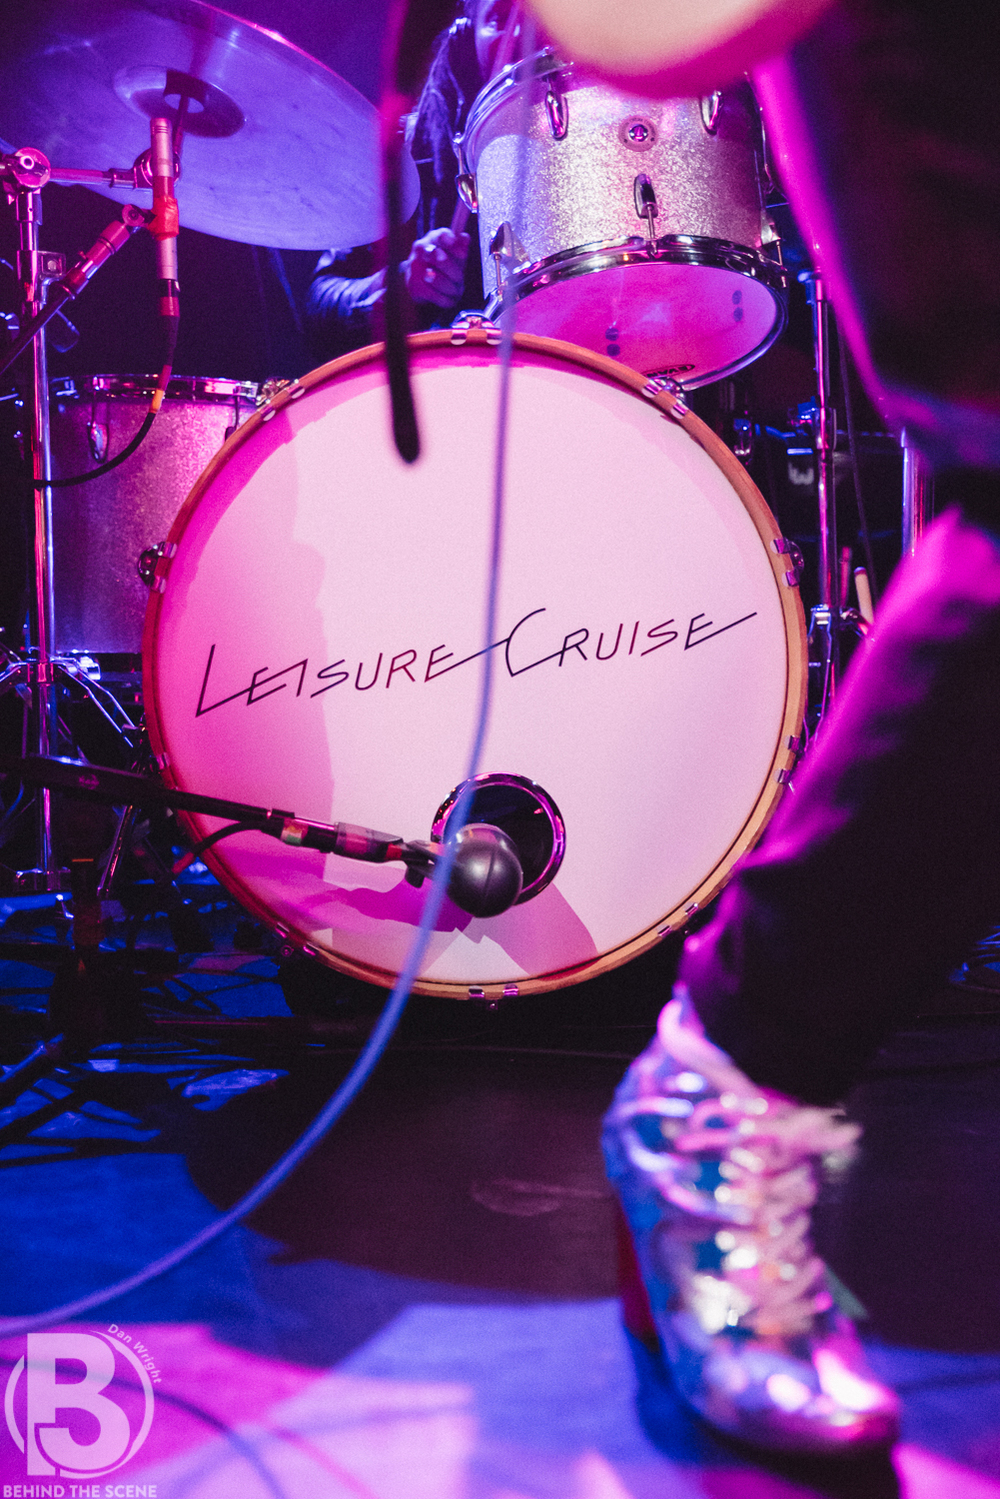 Leisure Cruise-152.jpg